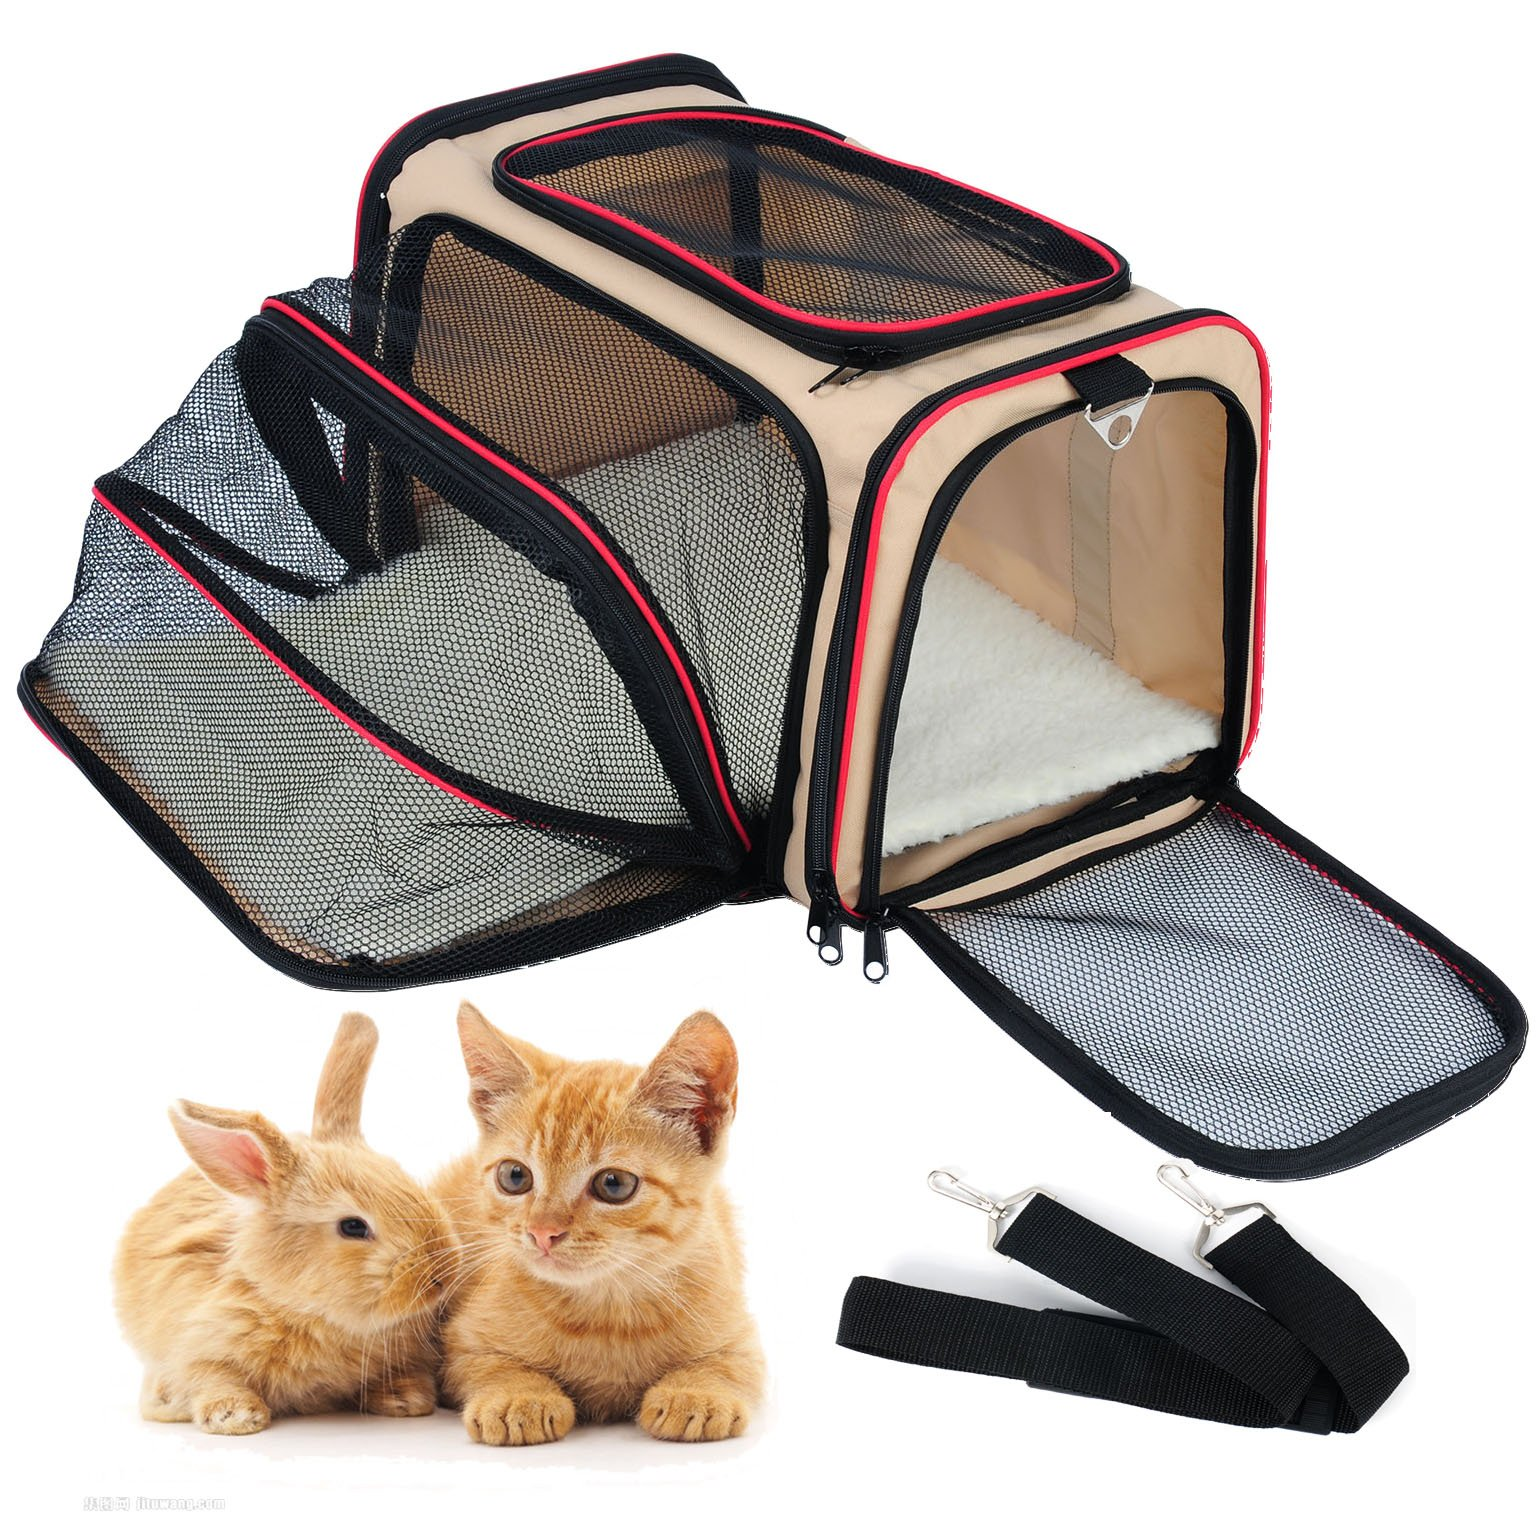 WOLTU Expandable Soft-sided Pet Carrier Pet Tote for Cats Small Dogs and Puppies,Beige, PCS04bgeS1-x